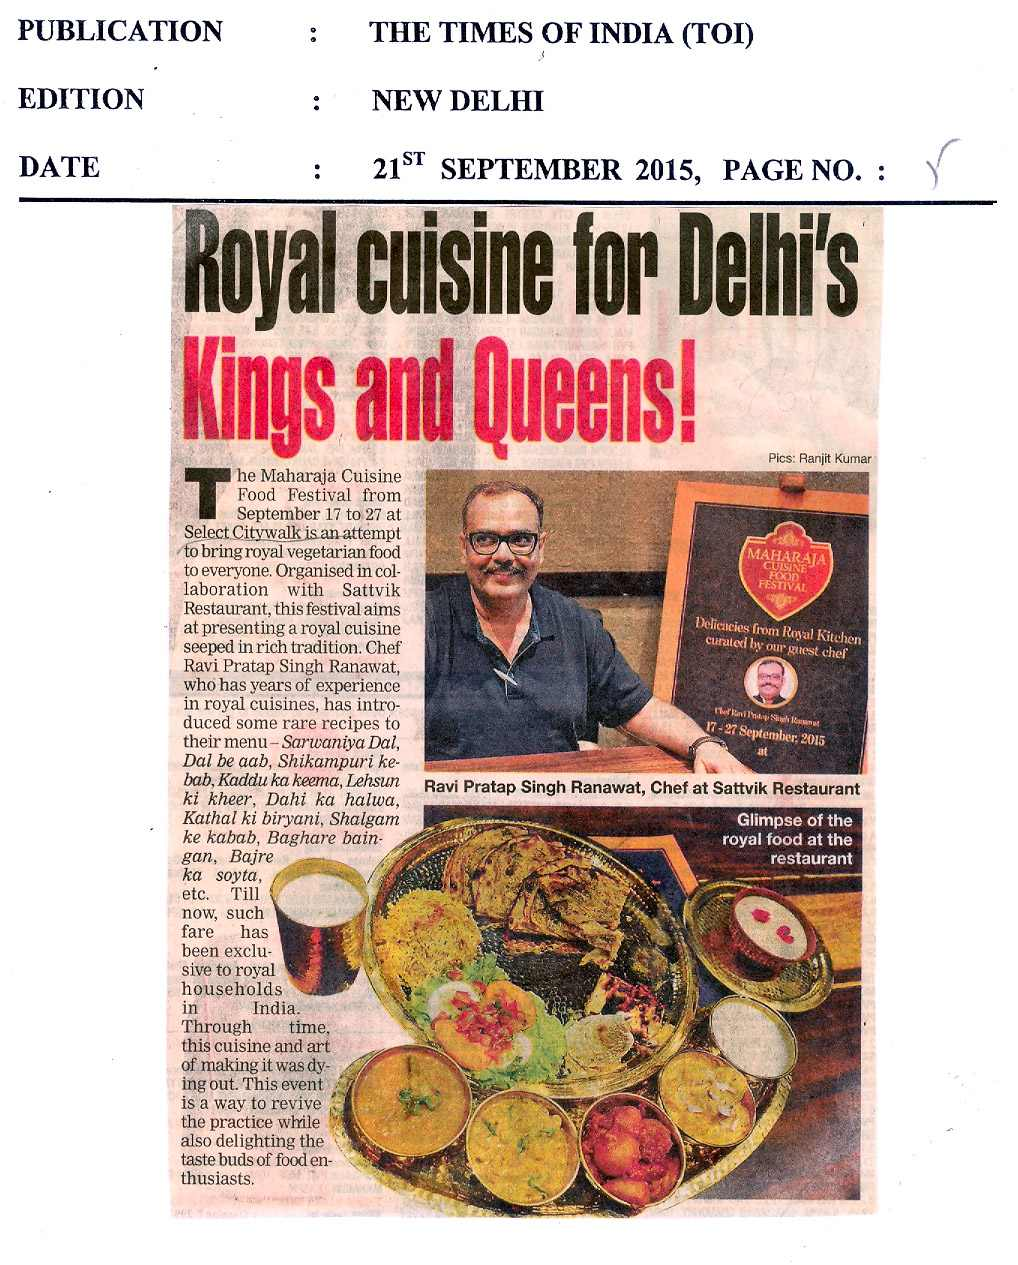 Royal cuisine for Delhi's Kings and Queens!